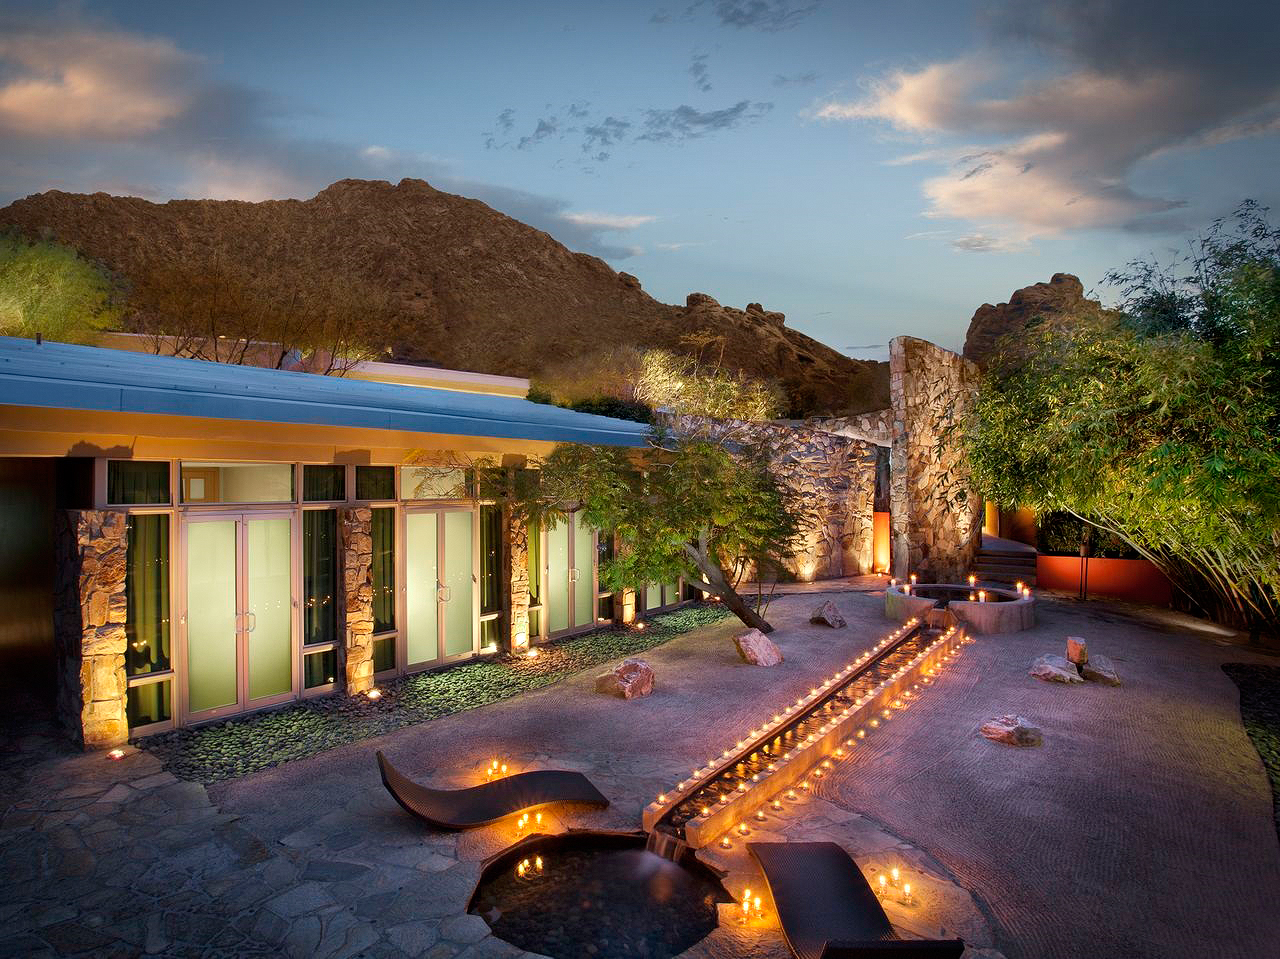 Where to Stay: Sanctuary Camelback Mountain Resort & Spa